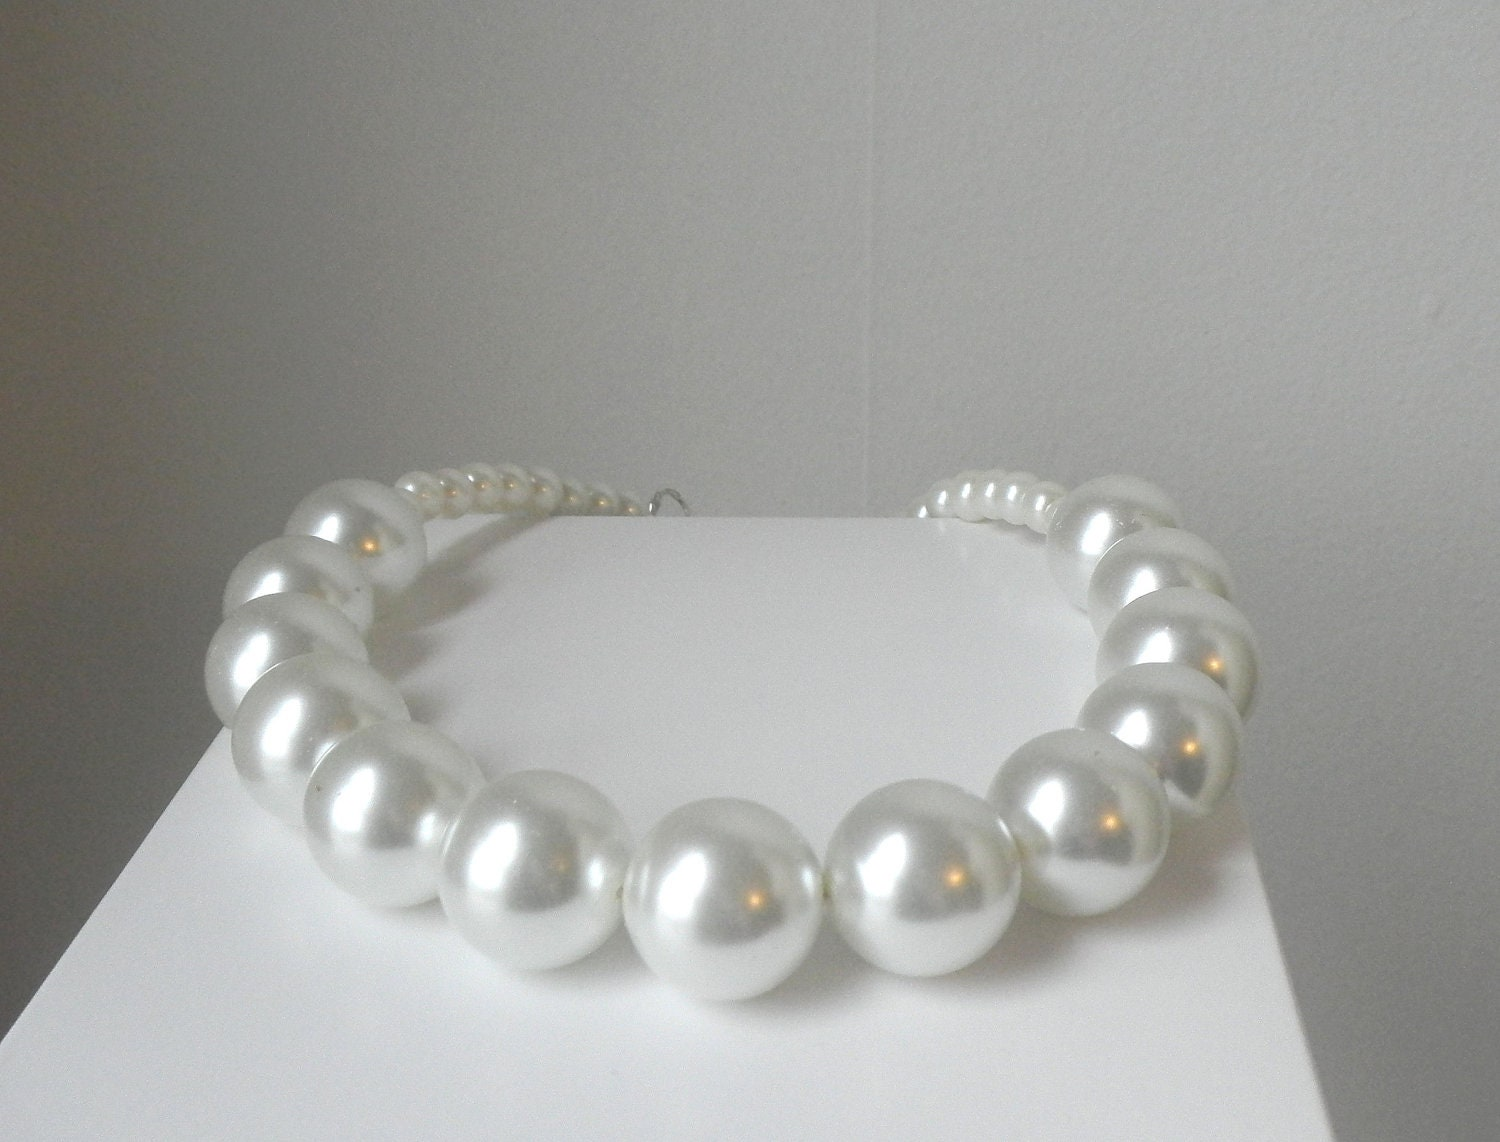 Find great deals on eBay for large chunky pearl necklace. Shop with confidence.